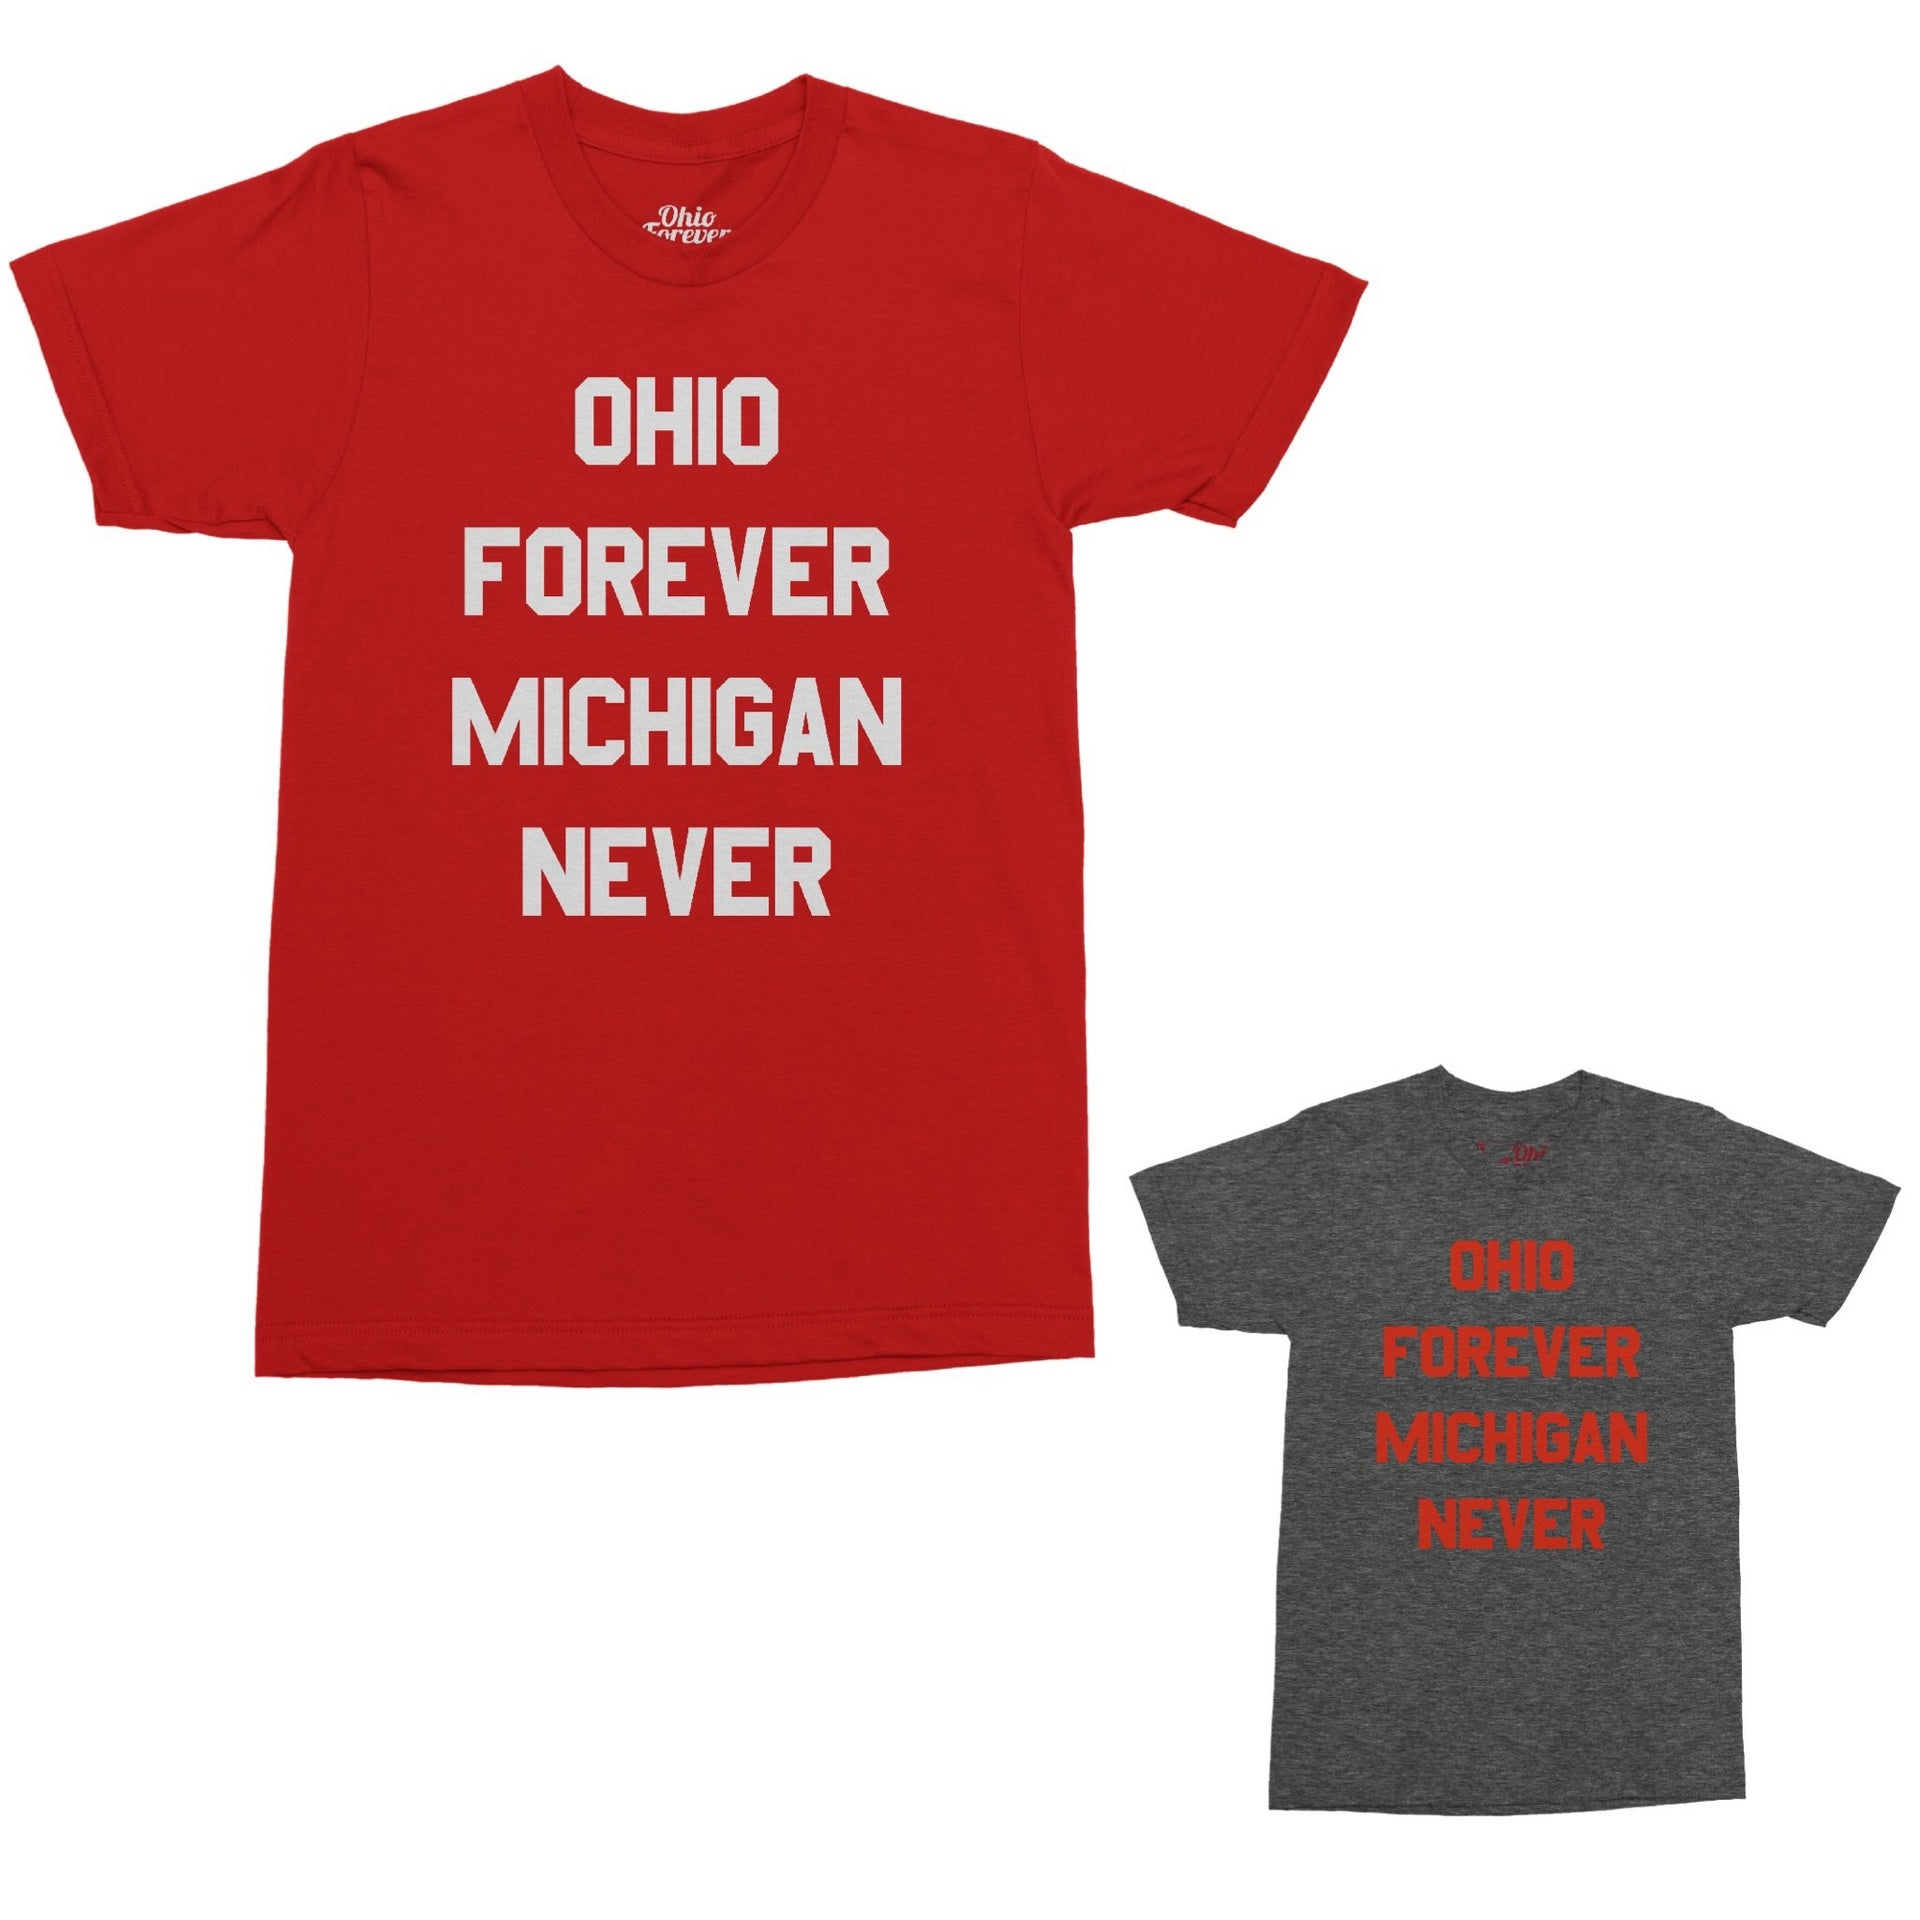 Ohio Forever Michigan Never T-Shirt - Celebrate Local, Shop The Best of Ohio